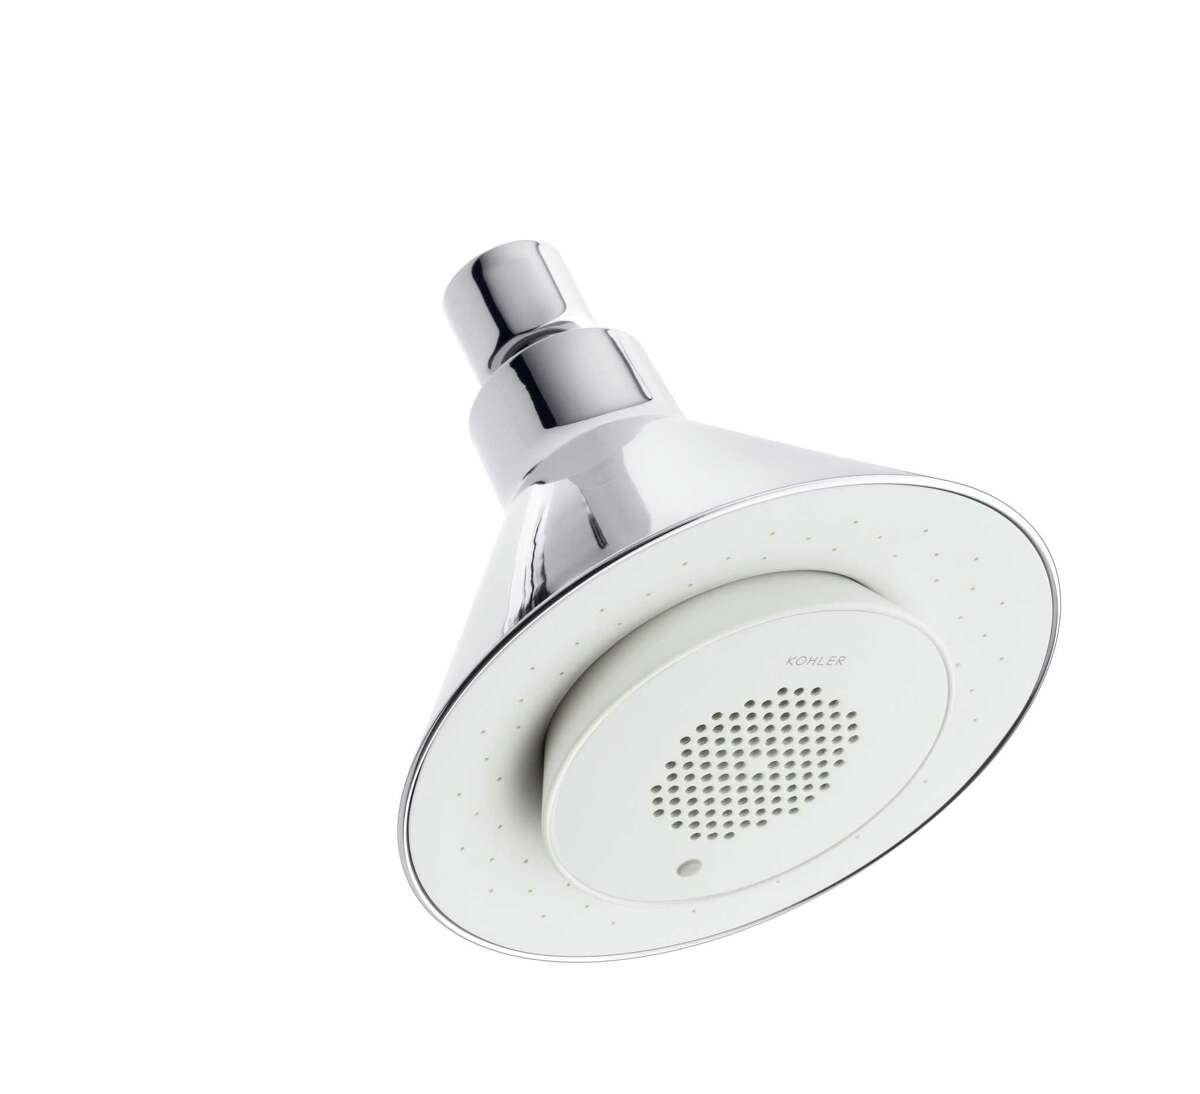 You want a better bathroom, but don't want to put a drain on your finances? It's easy to give the bathroom a makeover with small changes, such as a new showerhead. The Moxie Showerhead by Kohler features an integrated speaker.